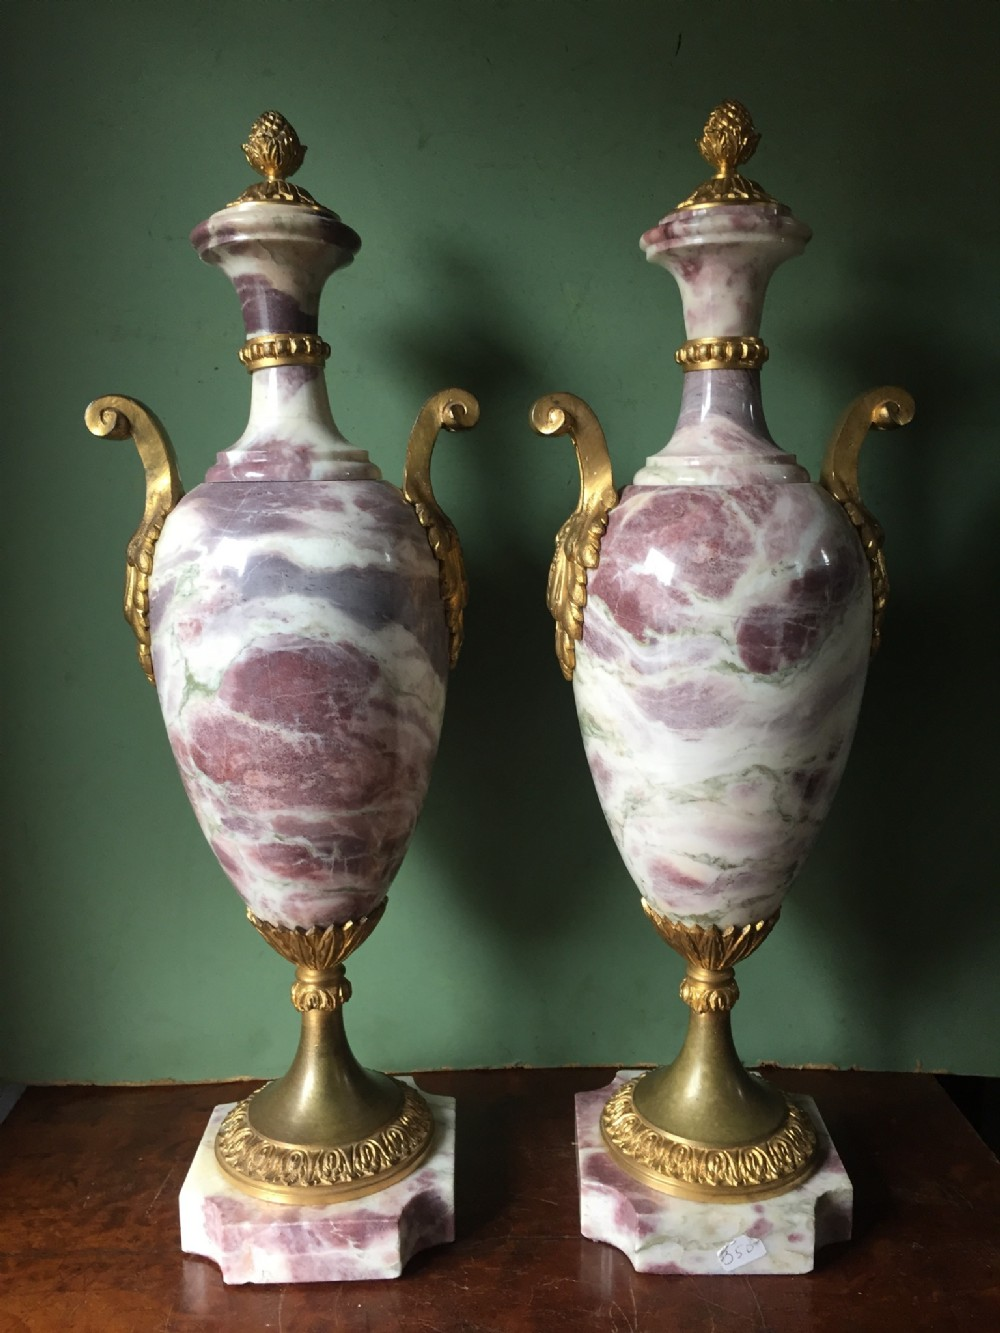 pair of elegant late c19th early c20th french ormolumounted marble vases